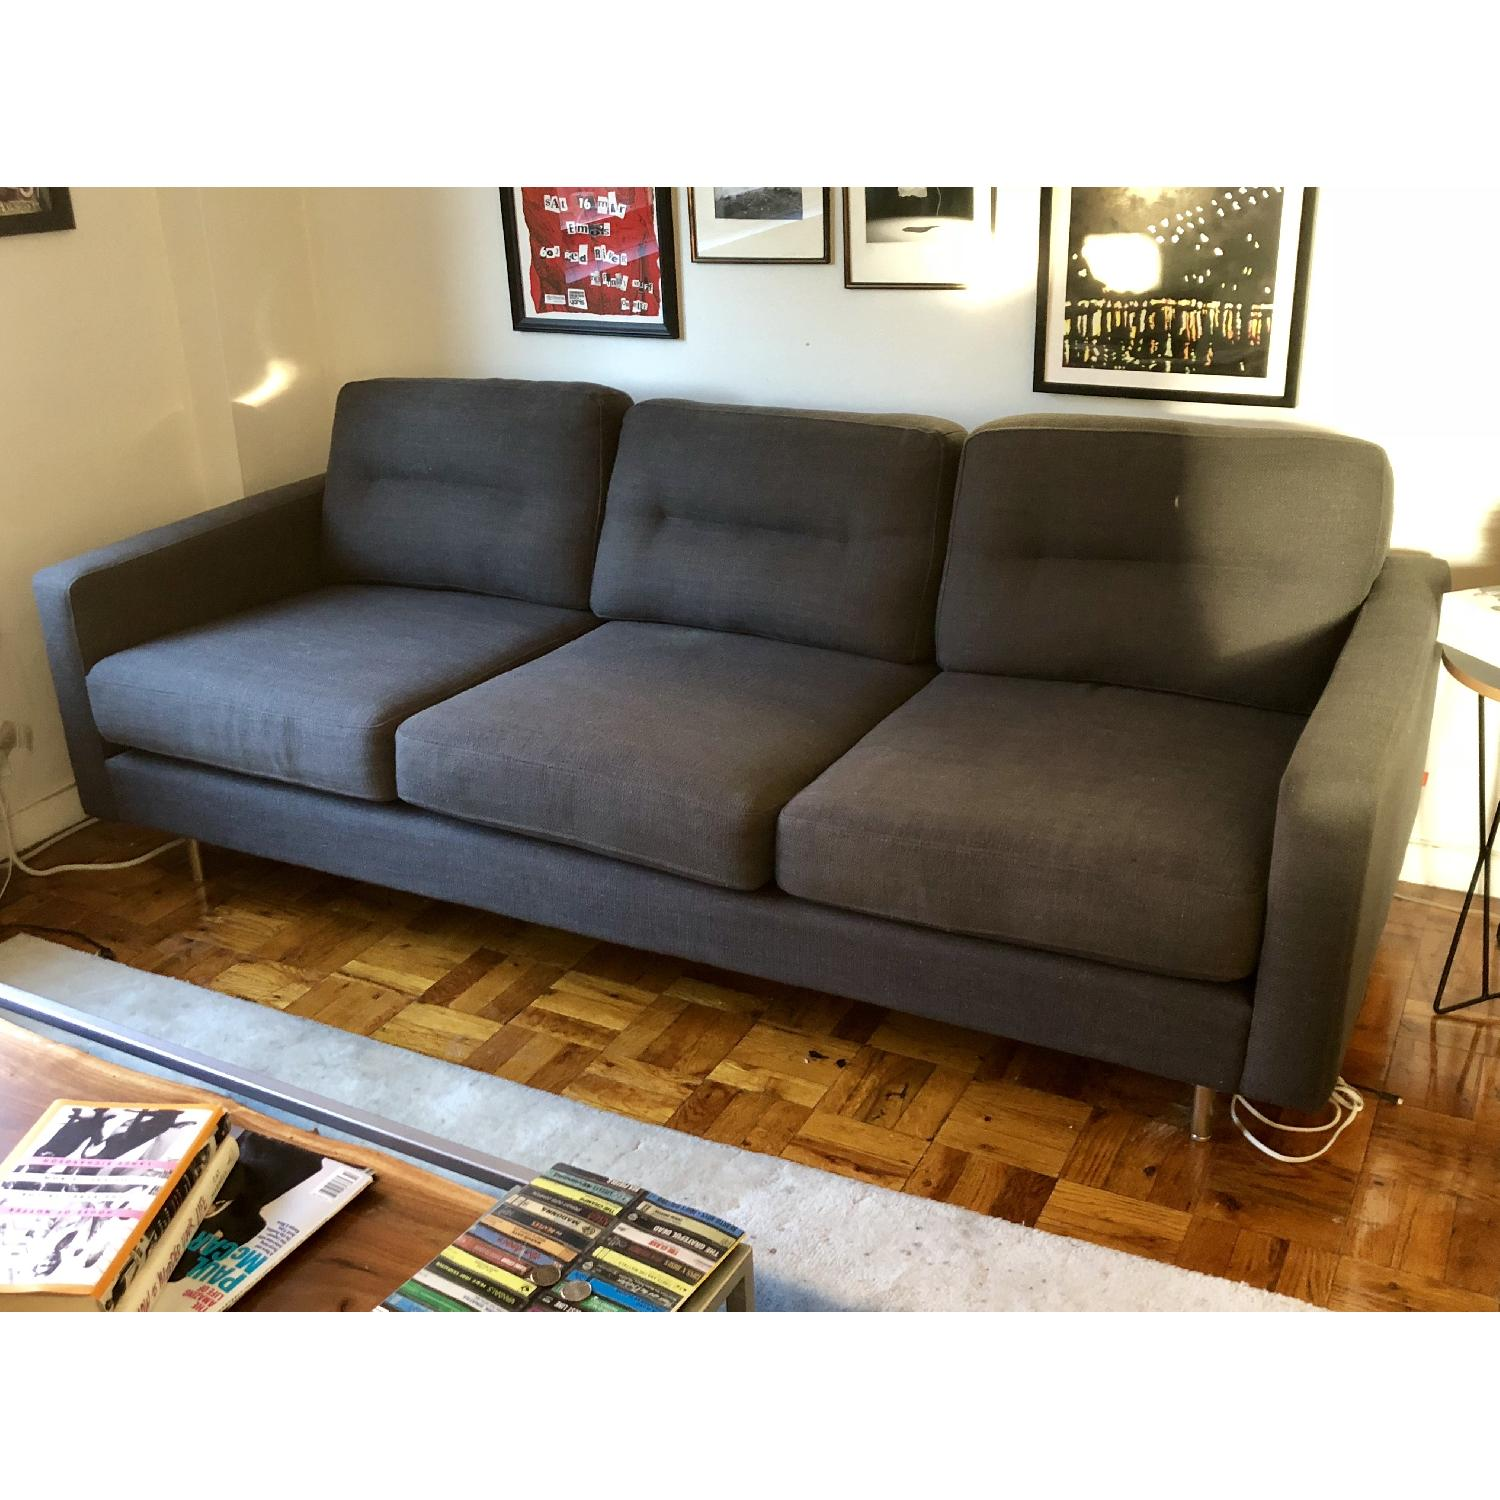 ... Gus Modern Logan Sofa In Graphite Grey 1 ...